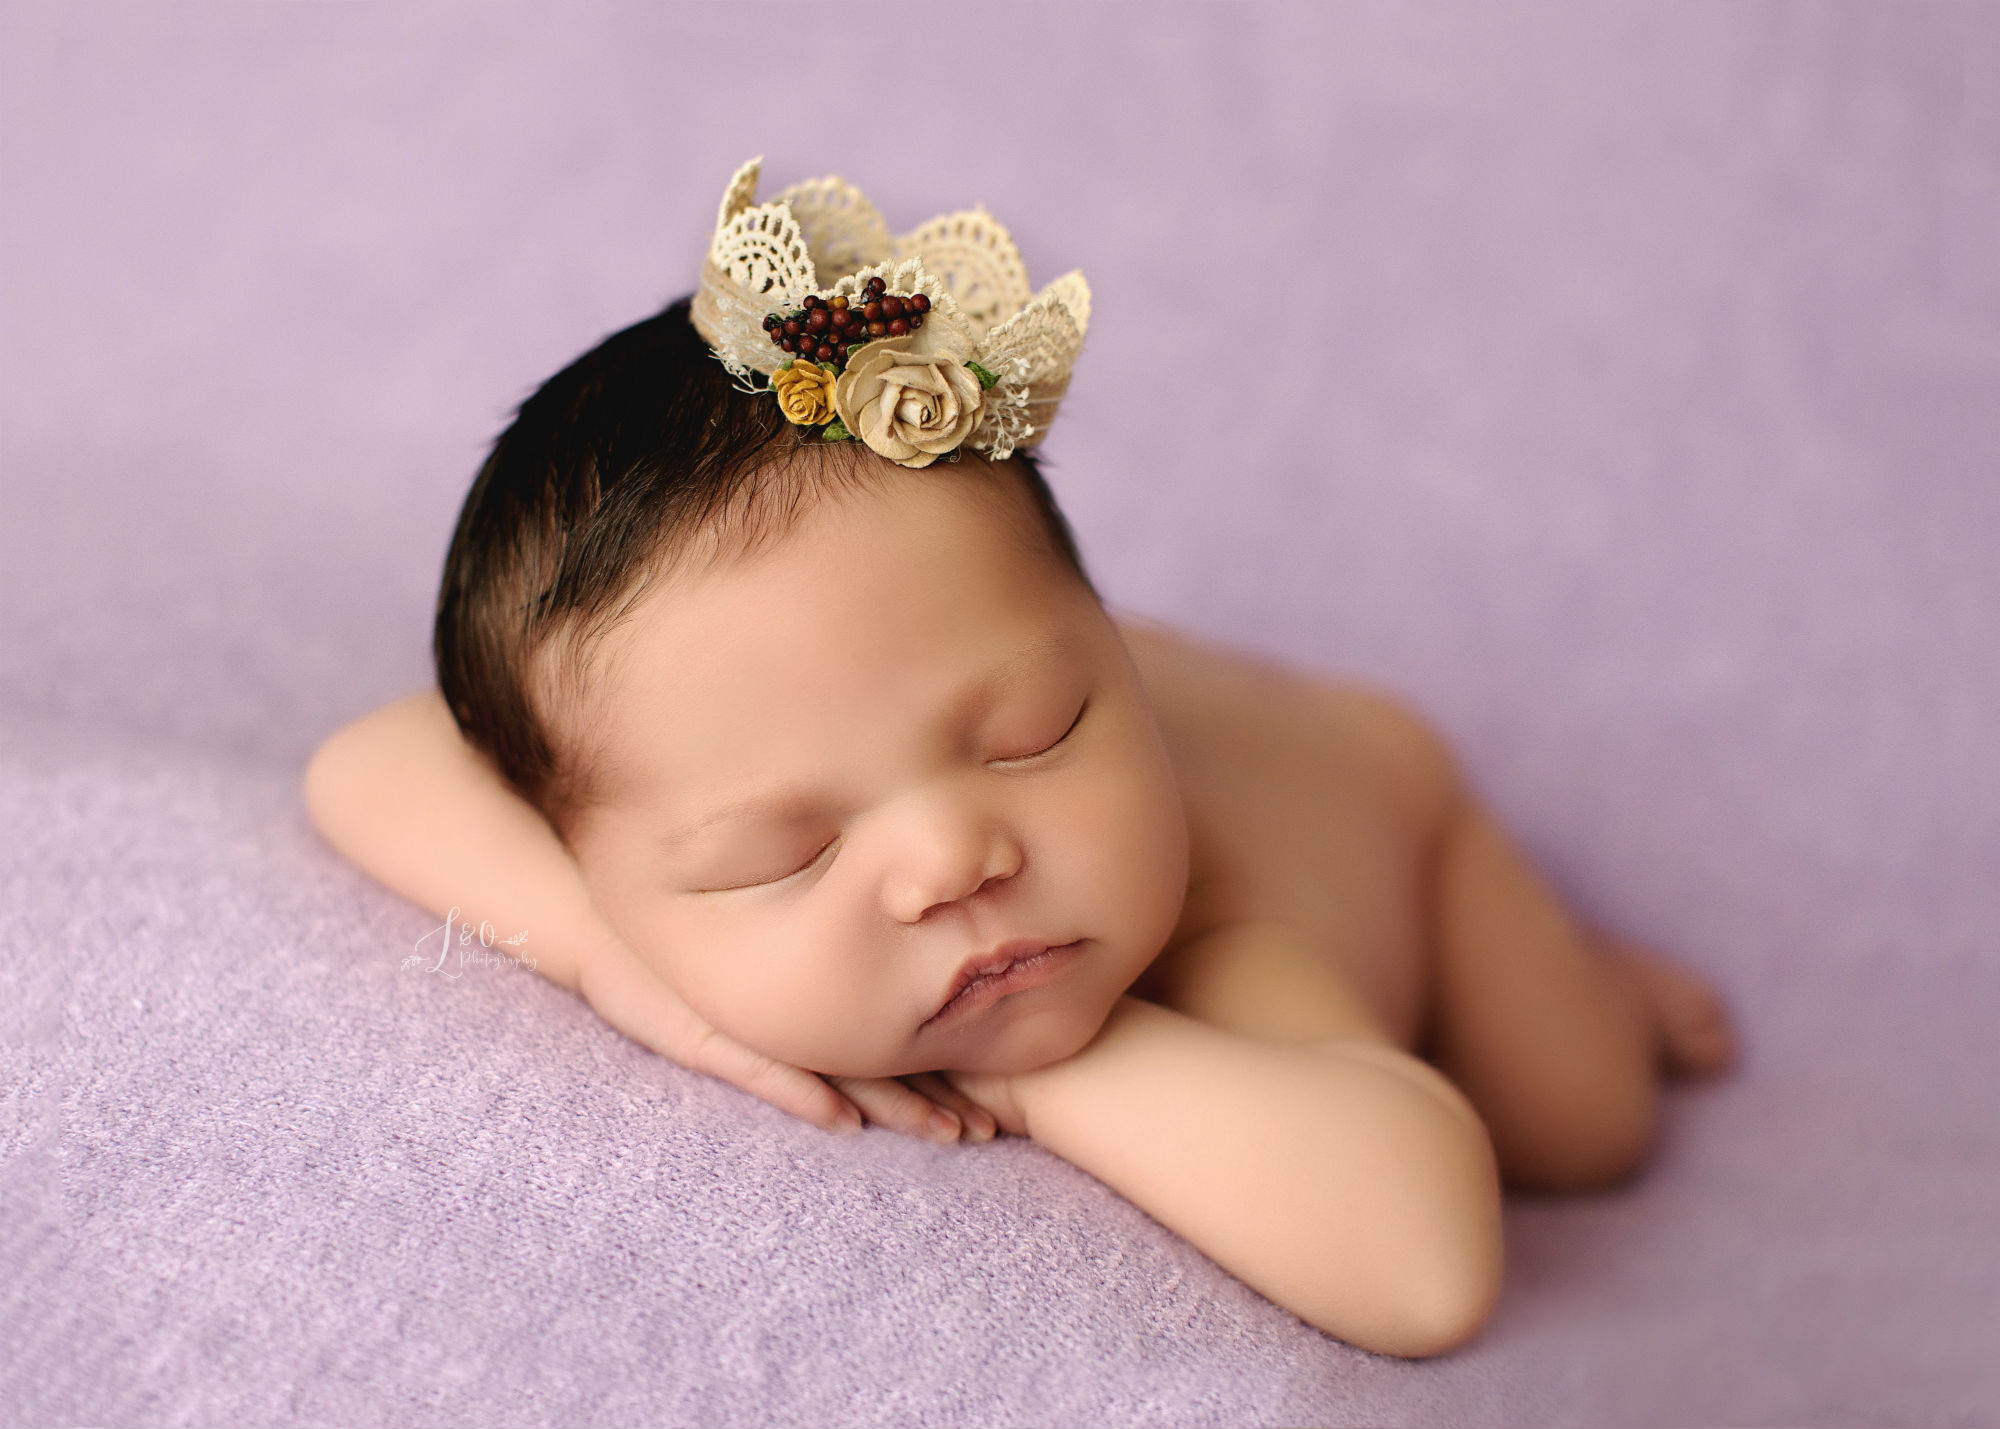 newborn photography tips image